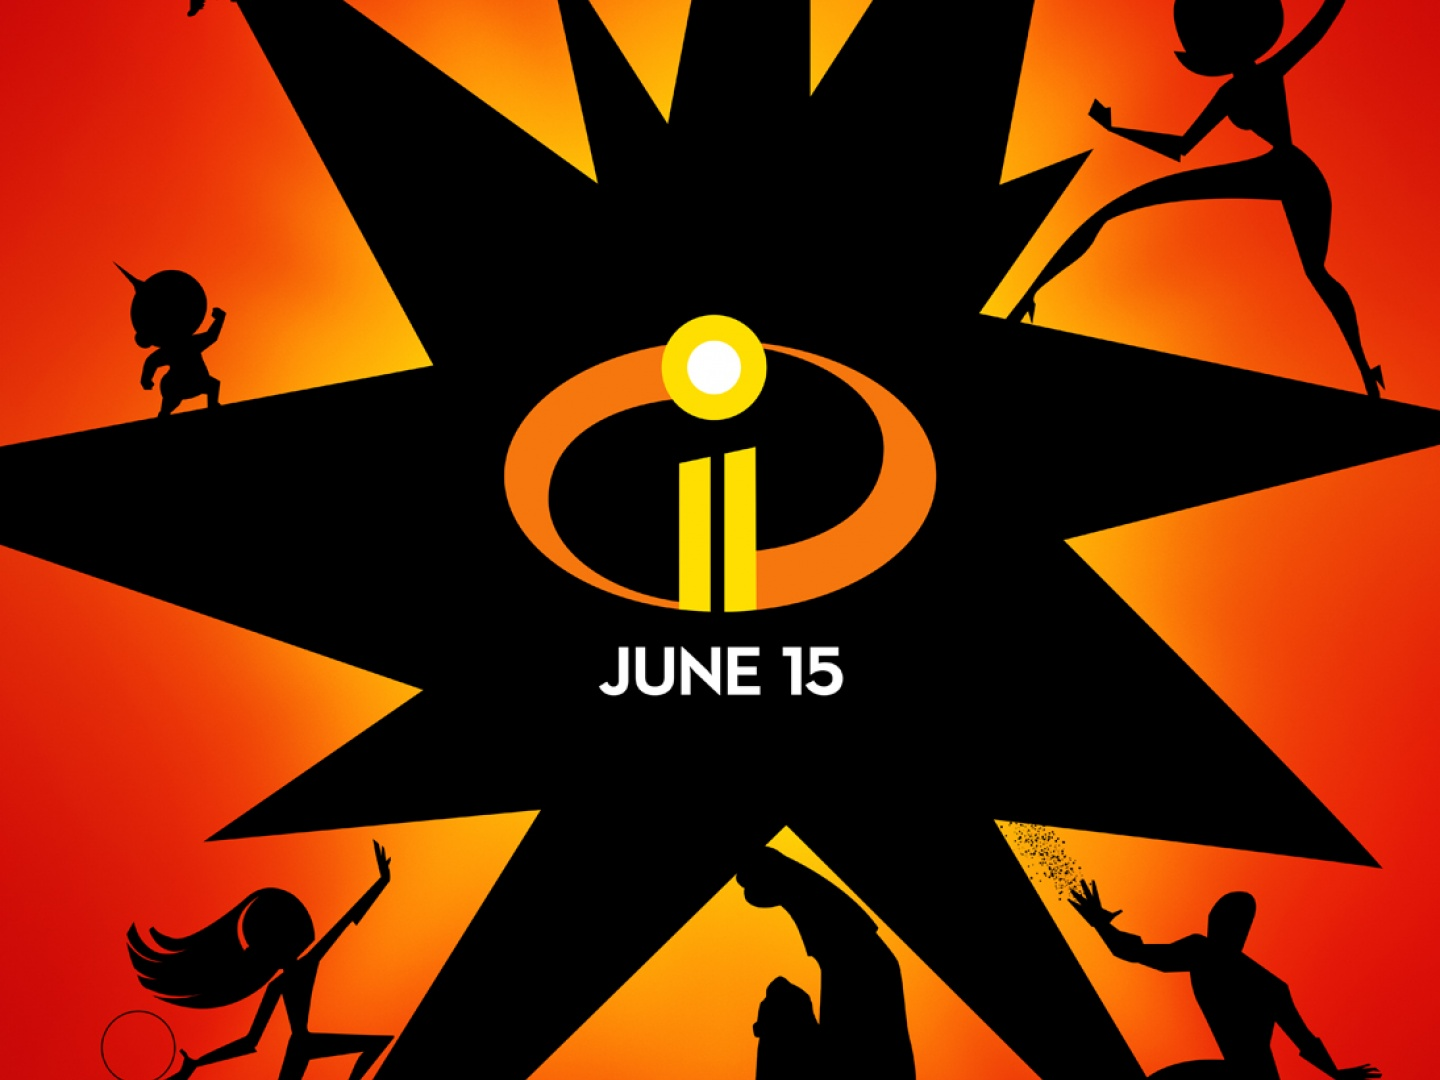 Image for Incredibles 2 Exclusive Graphic Poster Series Campaign